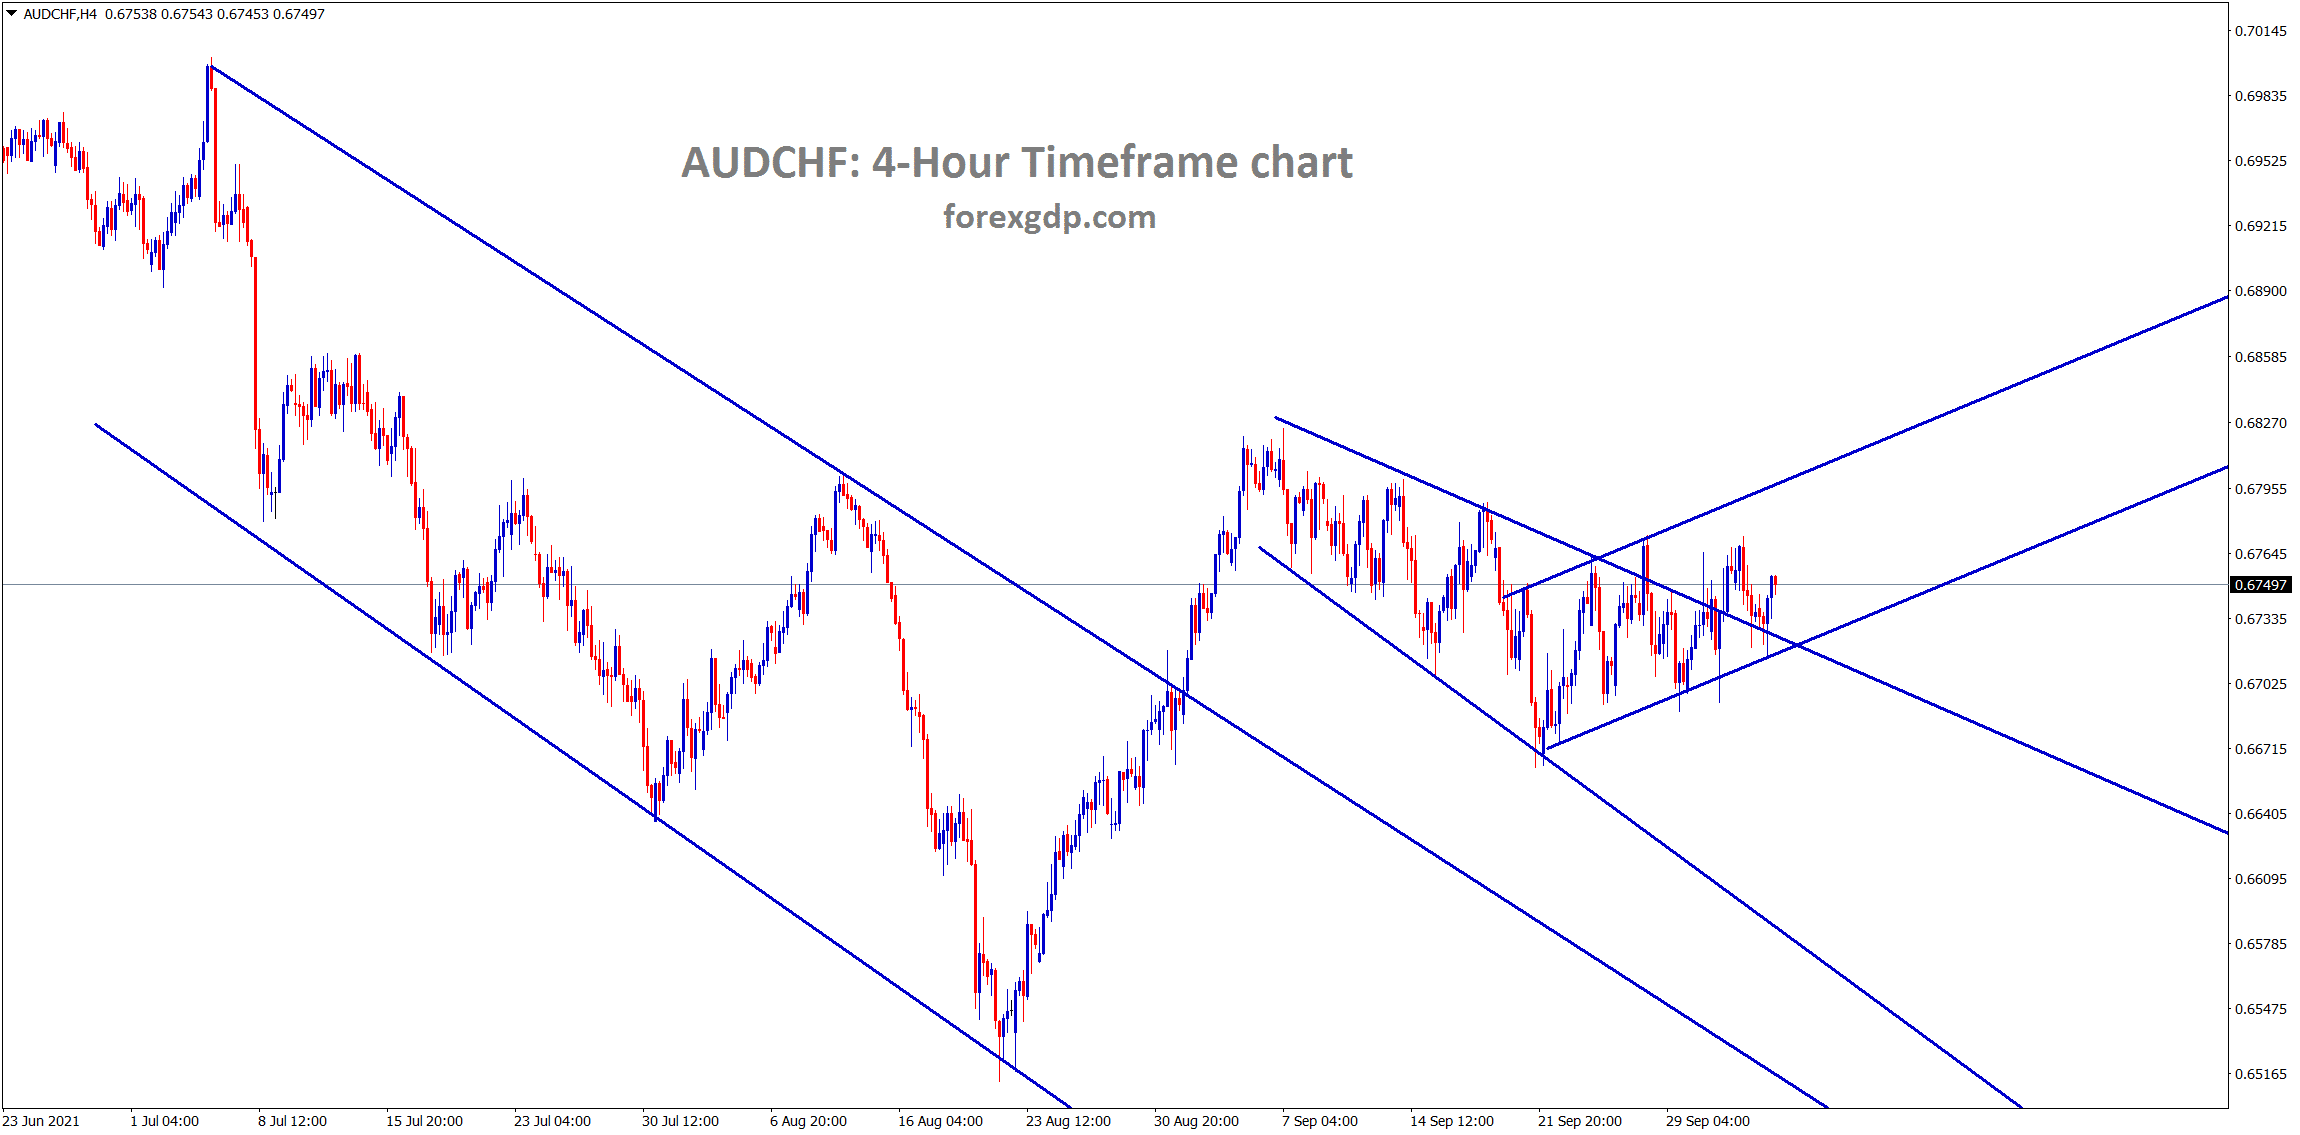 AUDCHF is moving in a small ascending channel line